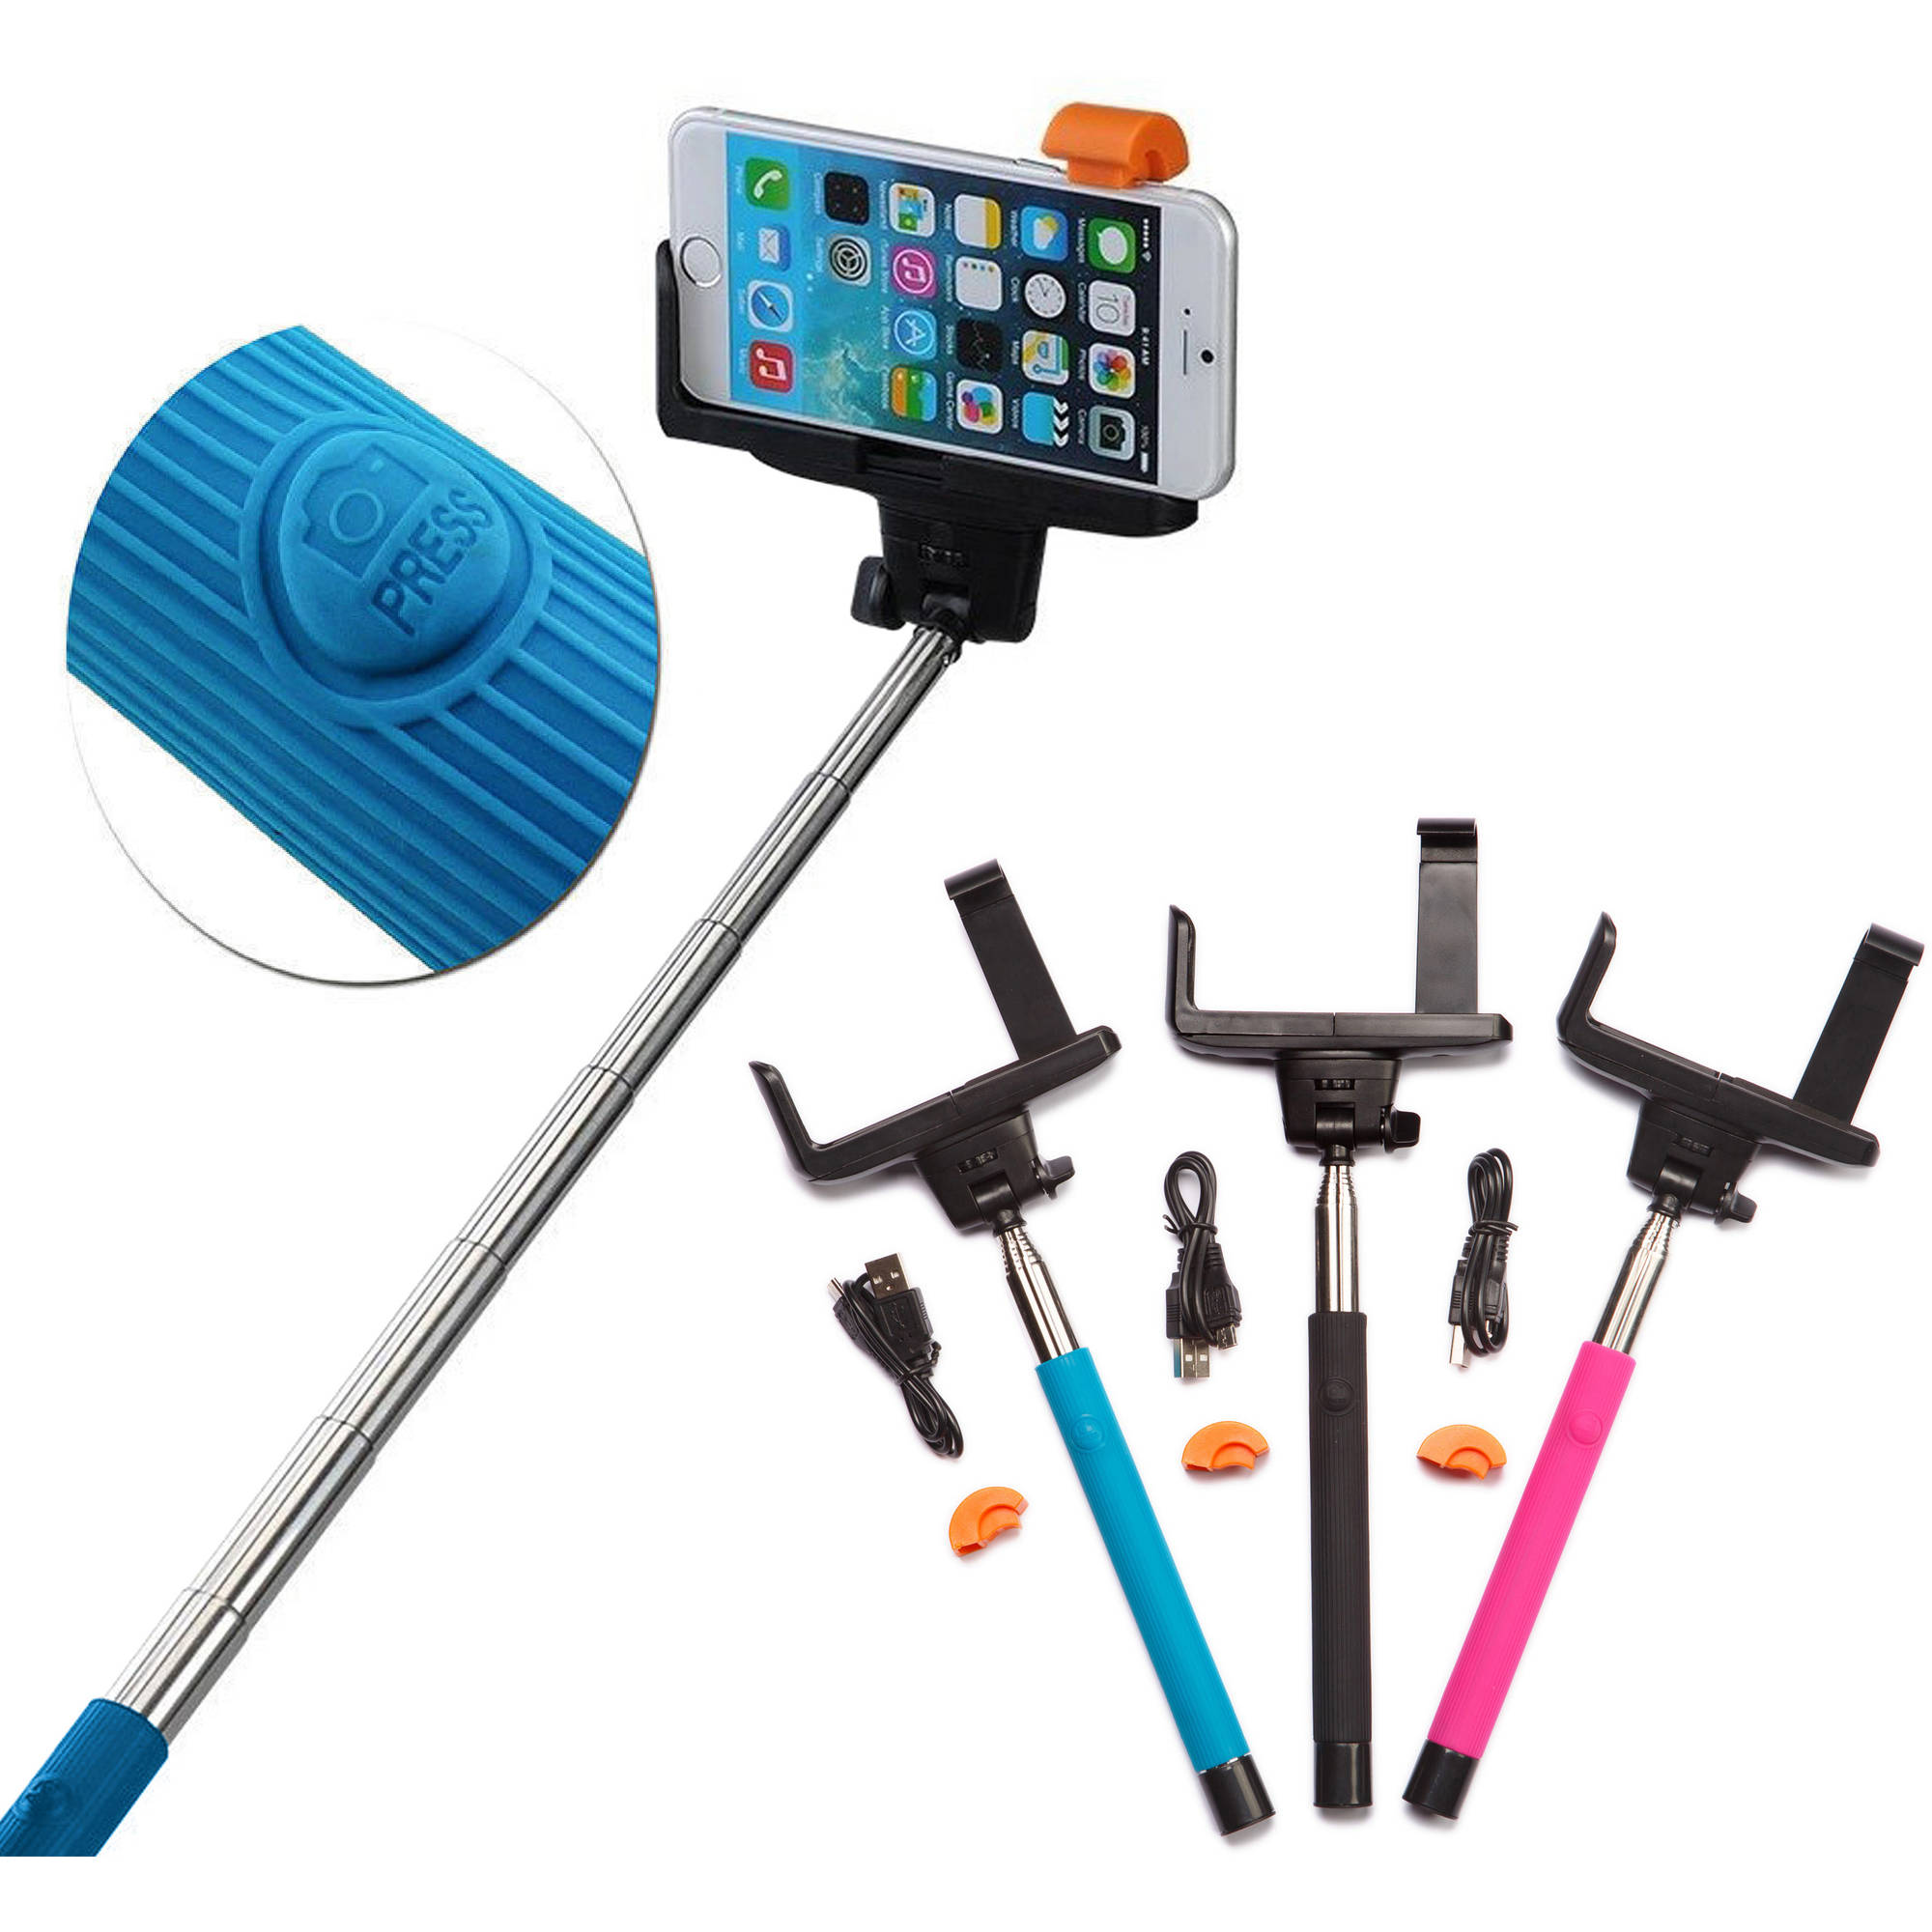 Carco Go Selfie Stick Bluetooth Remote Shutter 42 for iPhone, Samsung Galaxy and Android phones